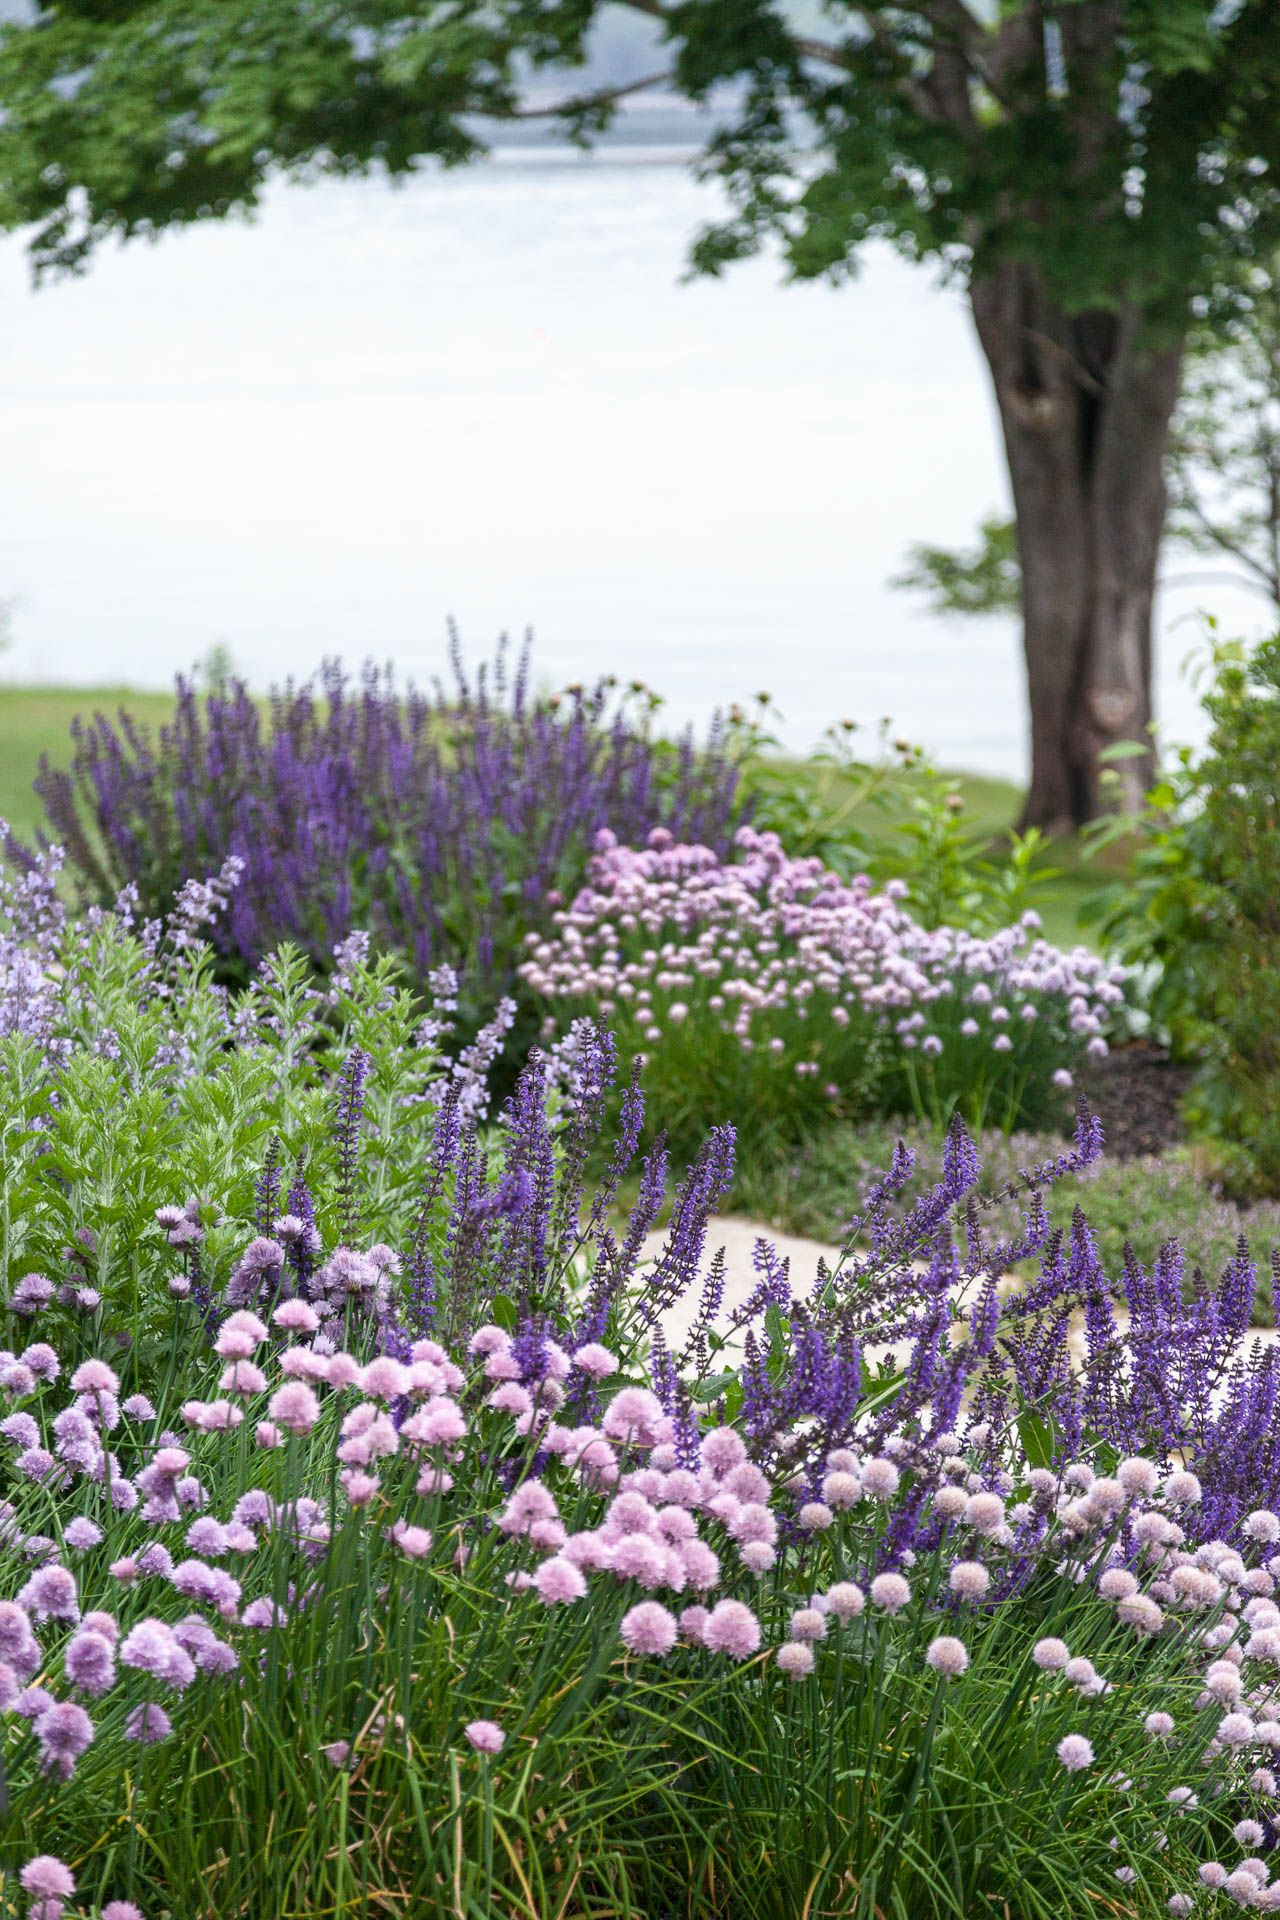 gorgeous planting! unfortuantely there are no plant names given